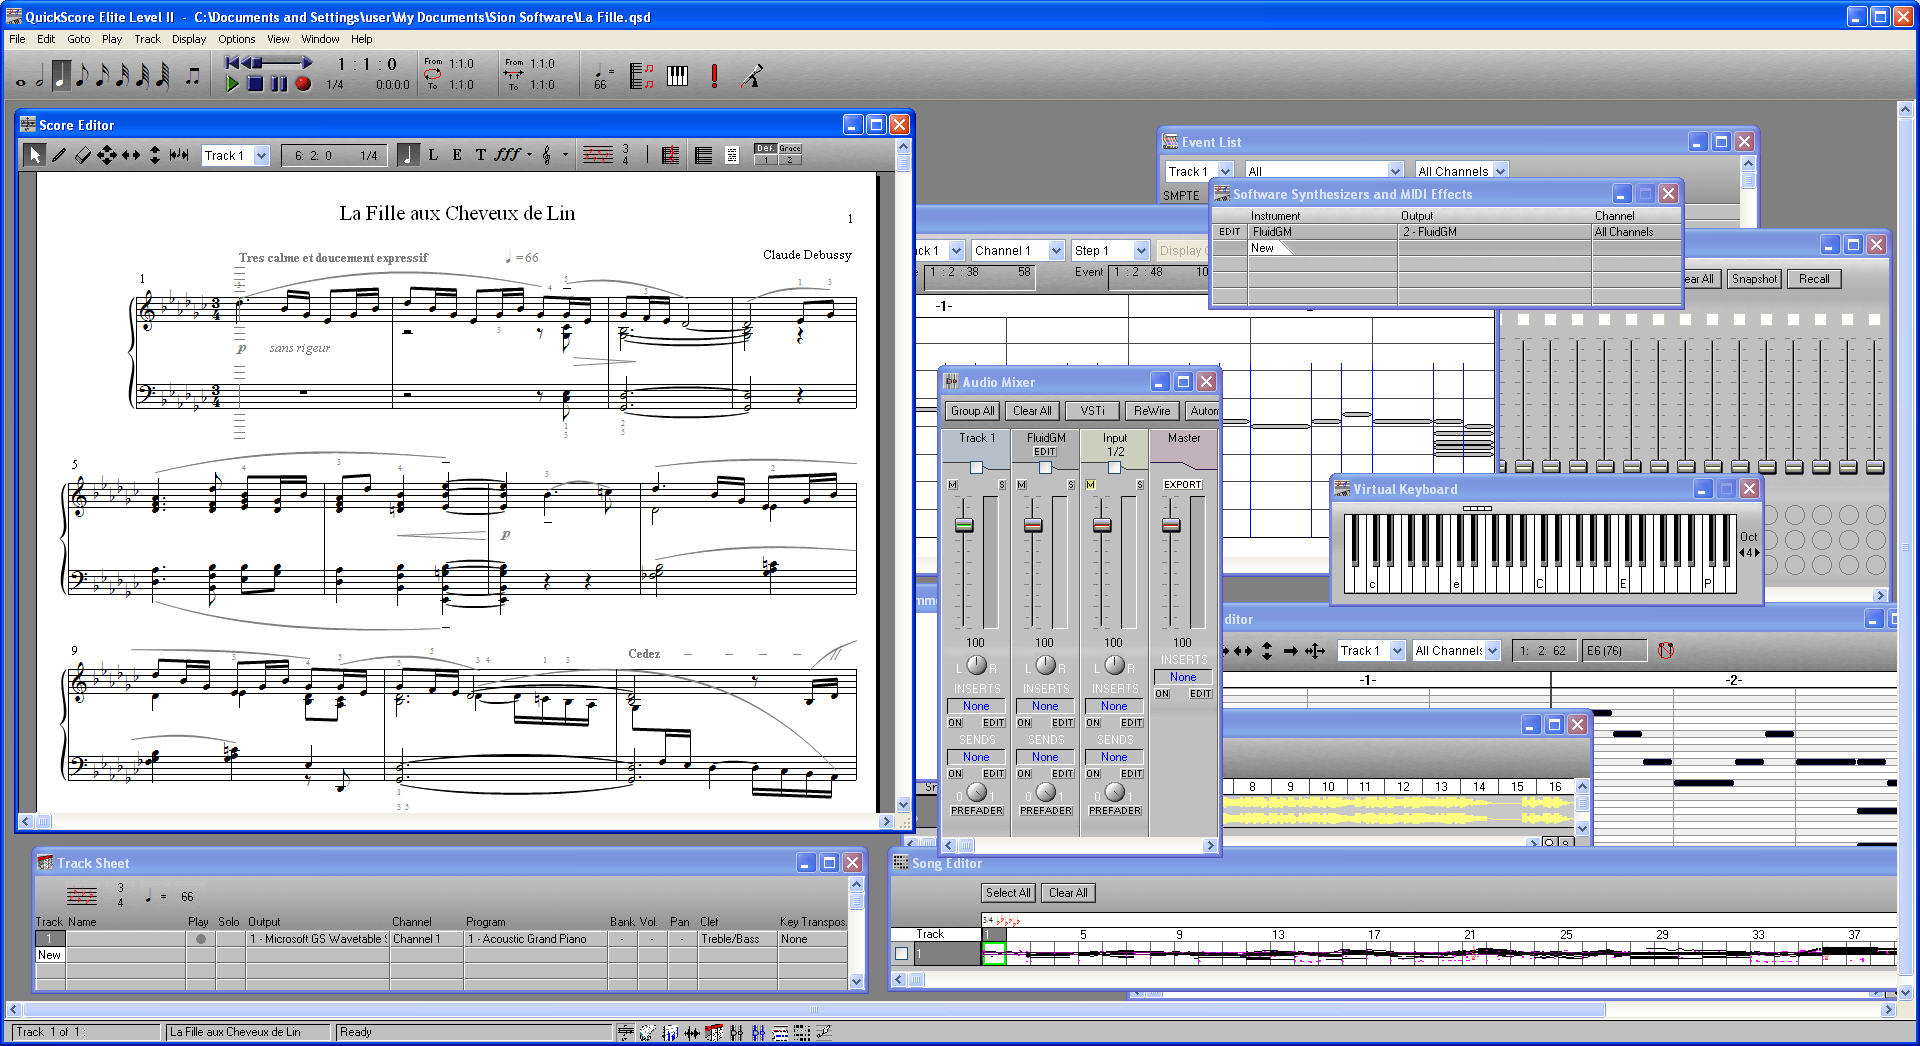 Sheet music writing software Research paper Help bbpaperqomr ...